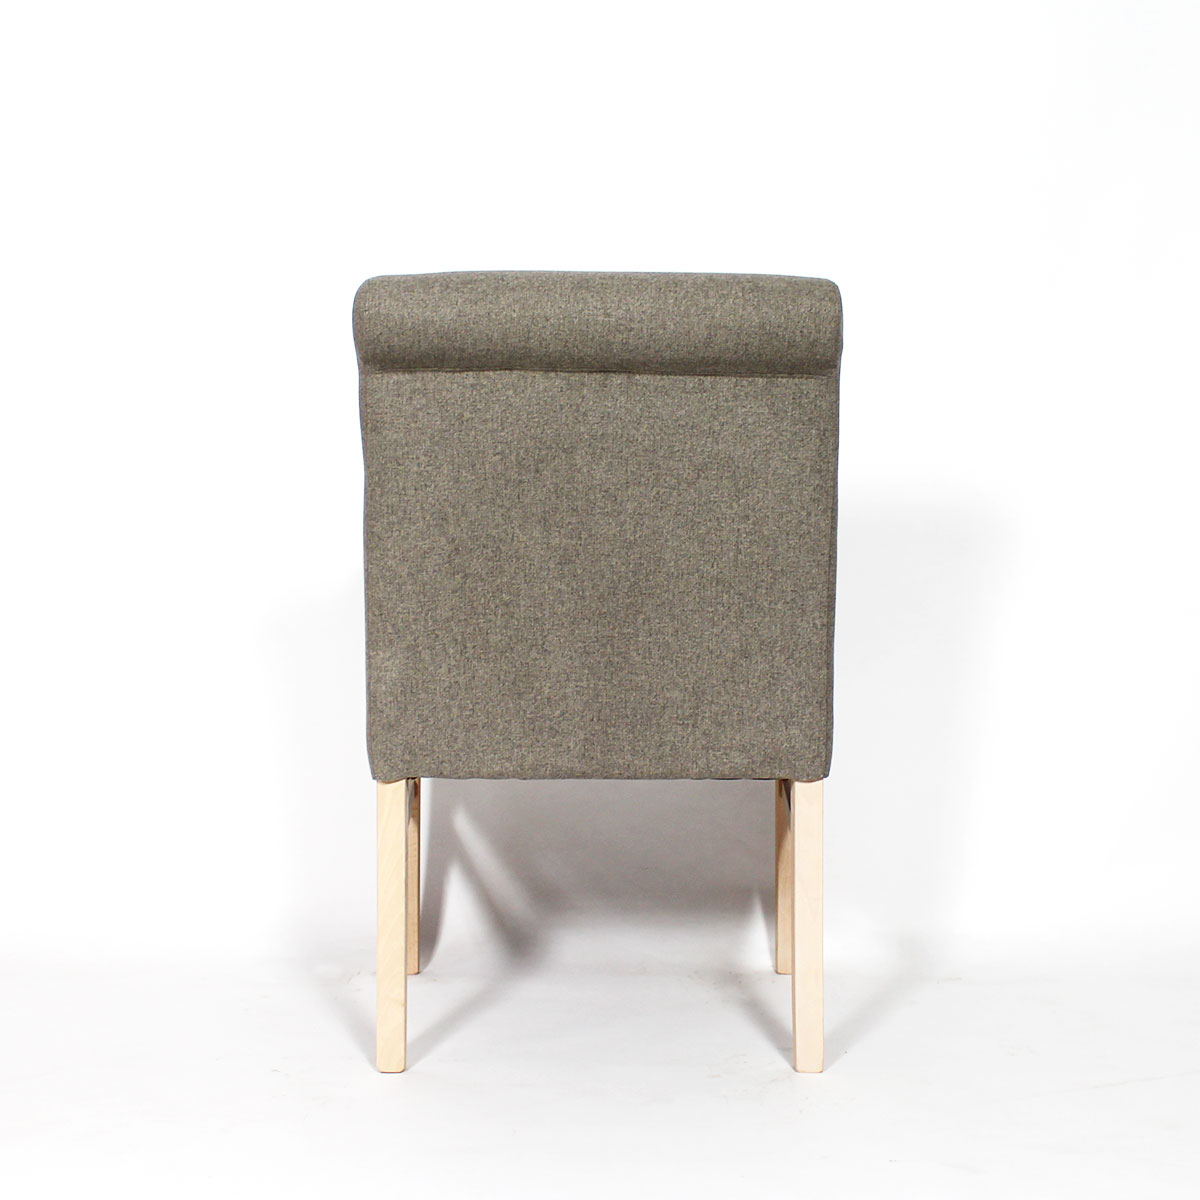 Fauteuil moderne pieds bois massif tissu taupe